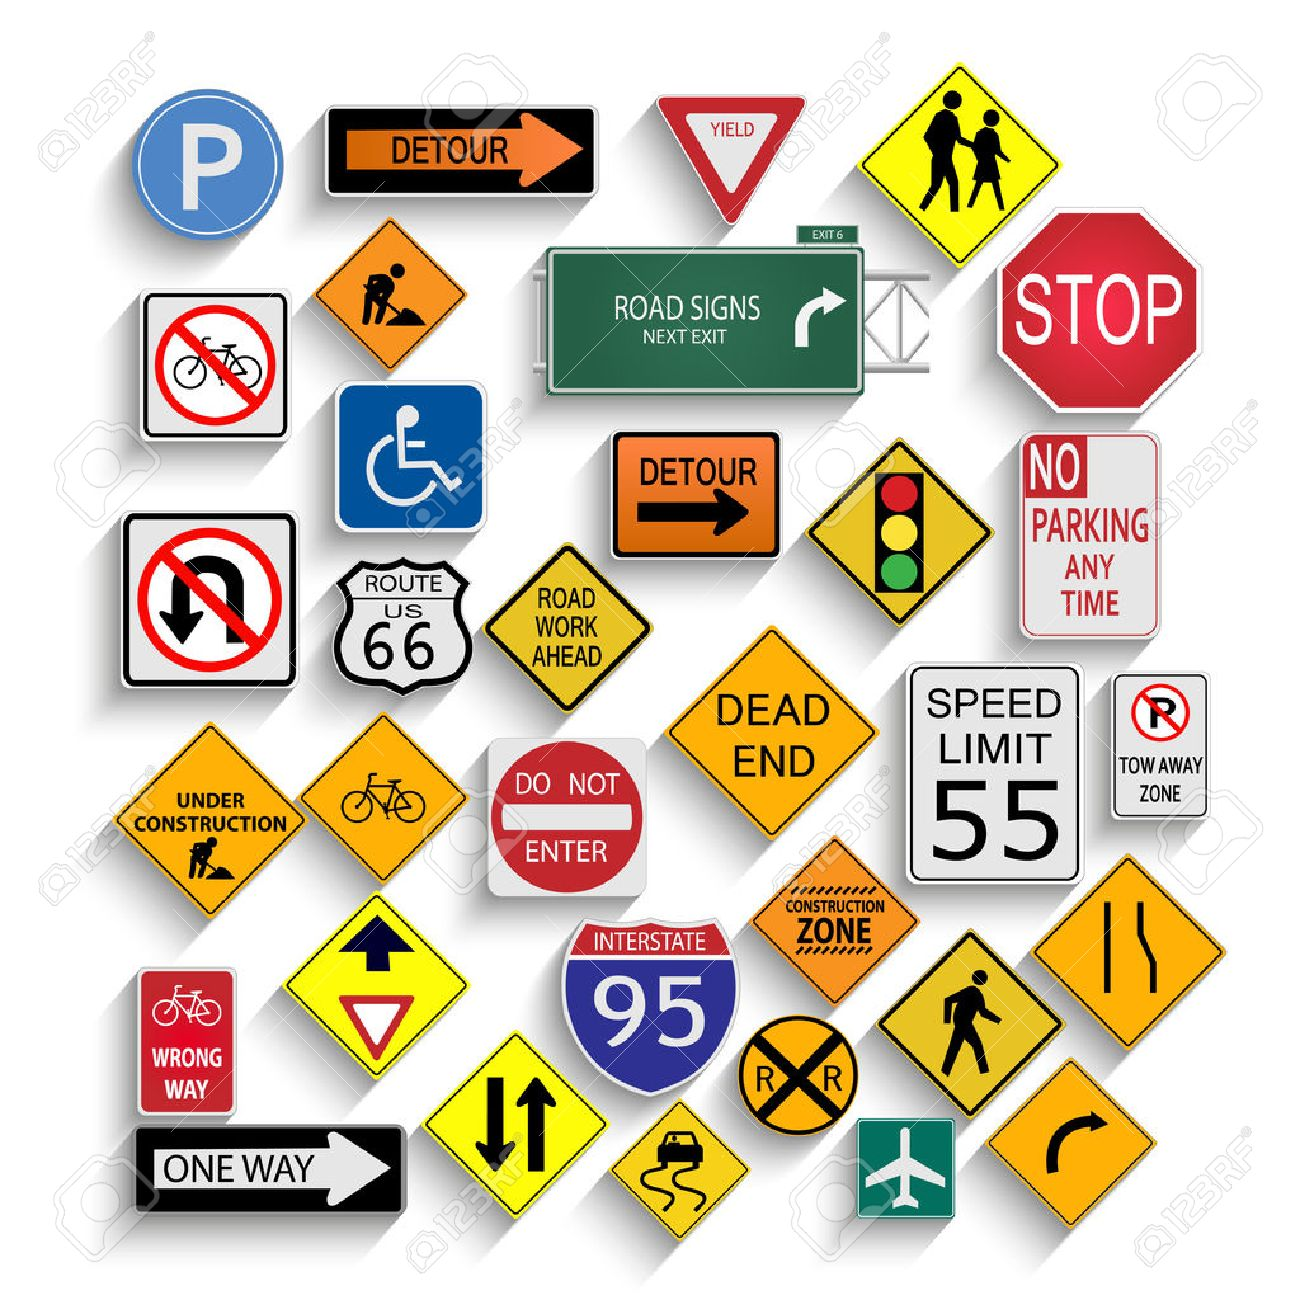 Illustration of various road signs isolated on a white background. - 27195376